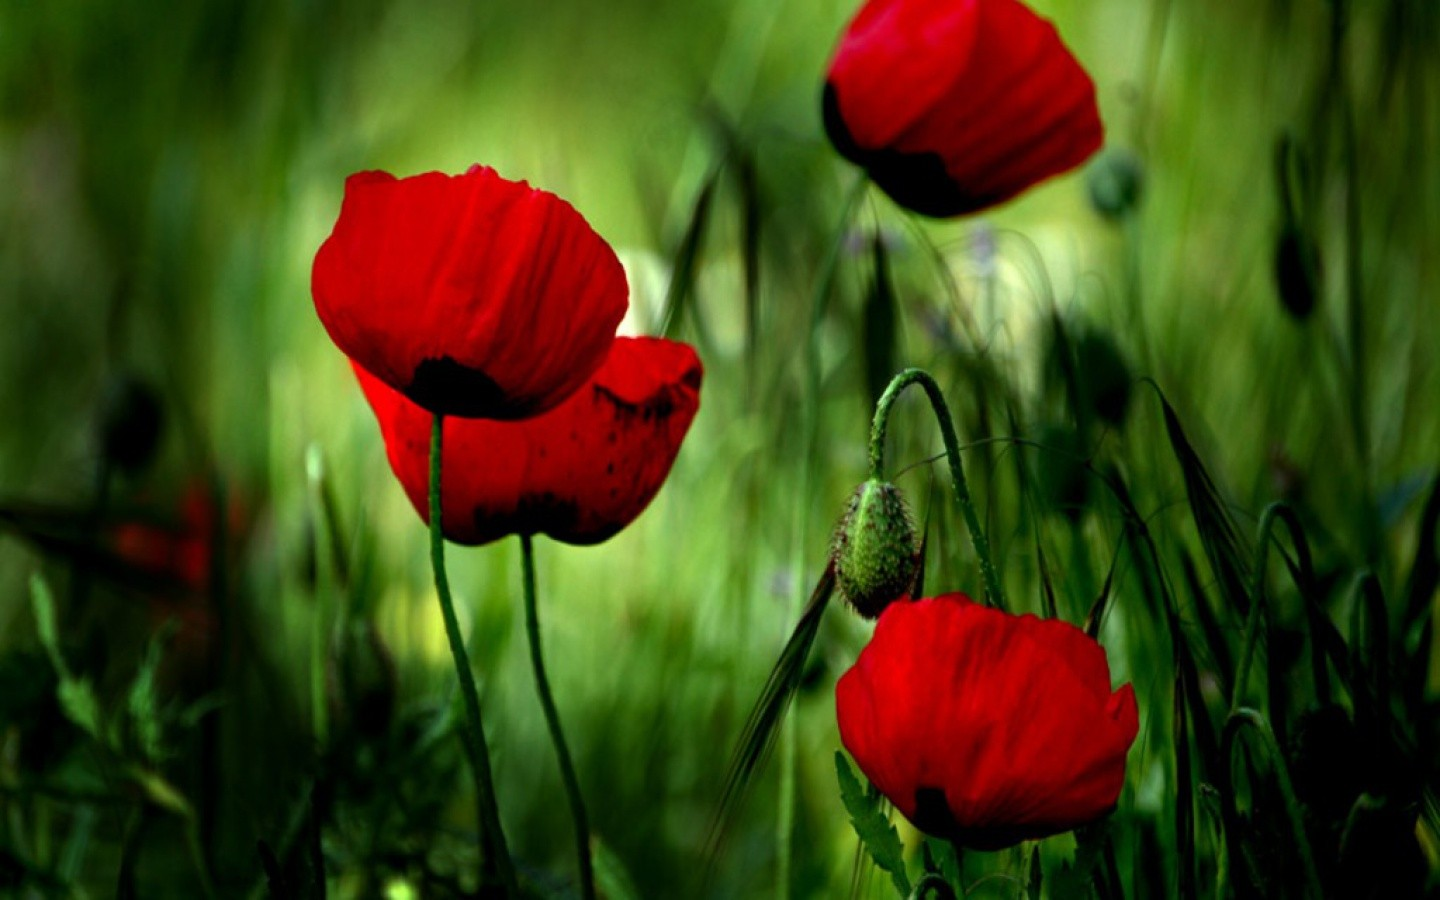 poppies wallpaper wallpapers high quality download free